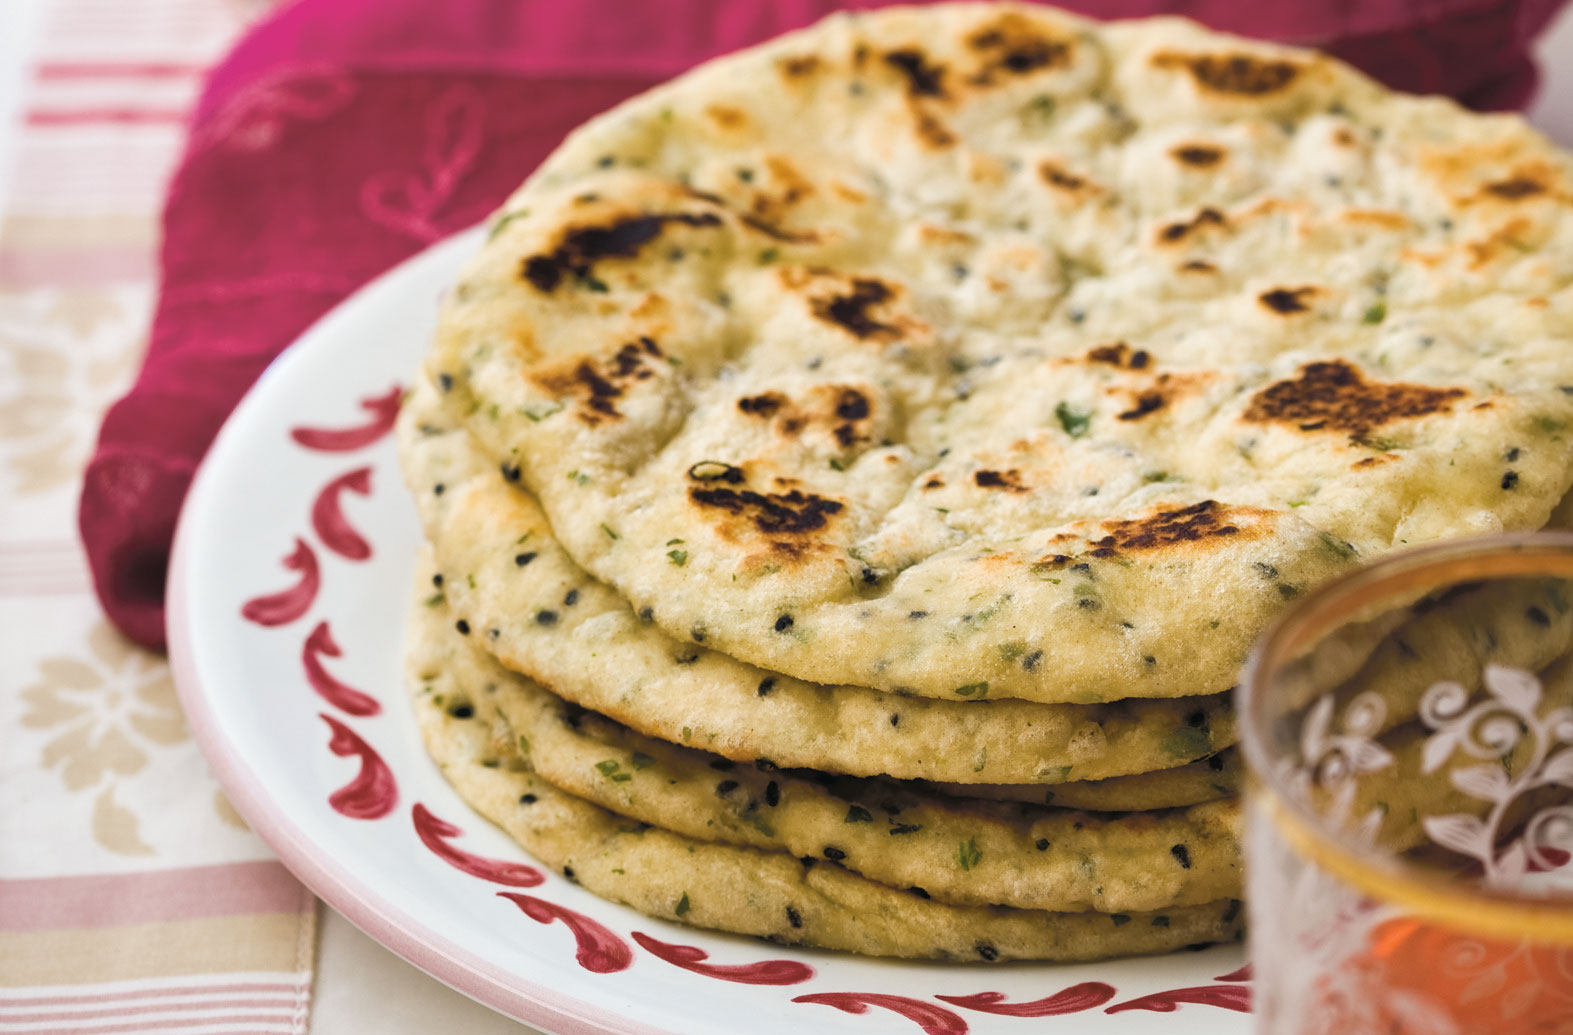 Learn how to master making naan bread at home